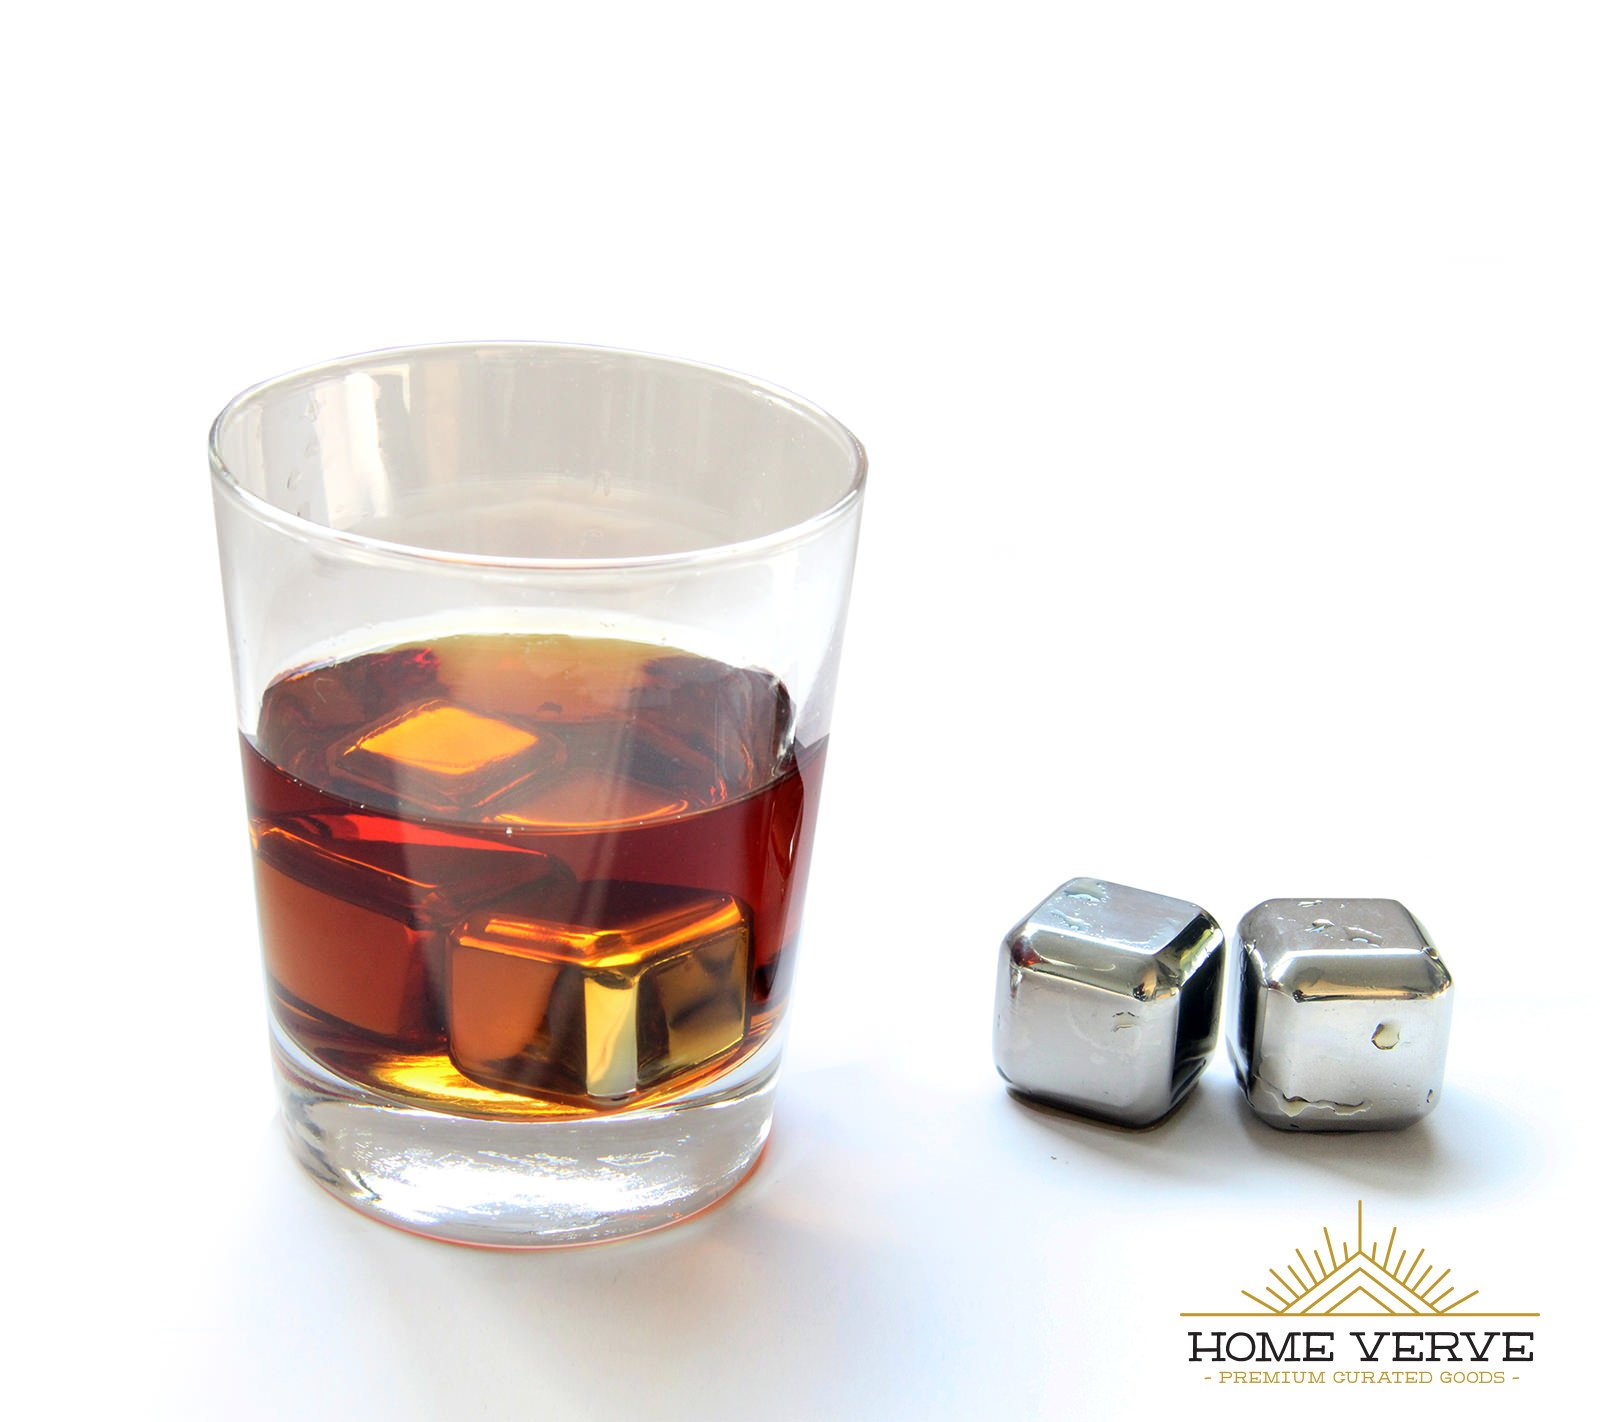 Home Verve Stainless Steel Chilling Ice Cube - A Classy, Non-diluting alternative to Ice! It will cool down your drinks without watering them down. These Chilling Ice Cubes are a great Barware and should be a part of every Barware tool sets, and every Hom